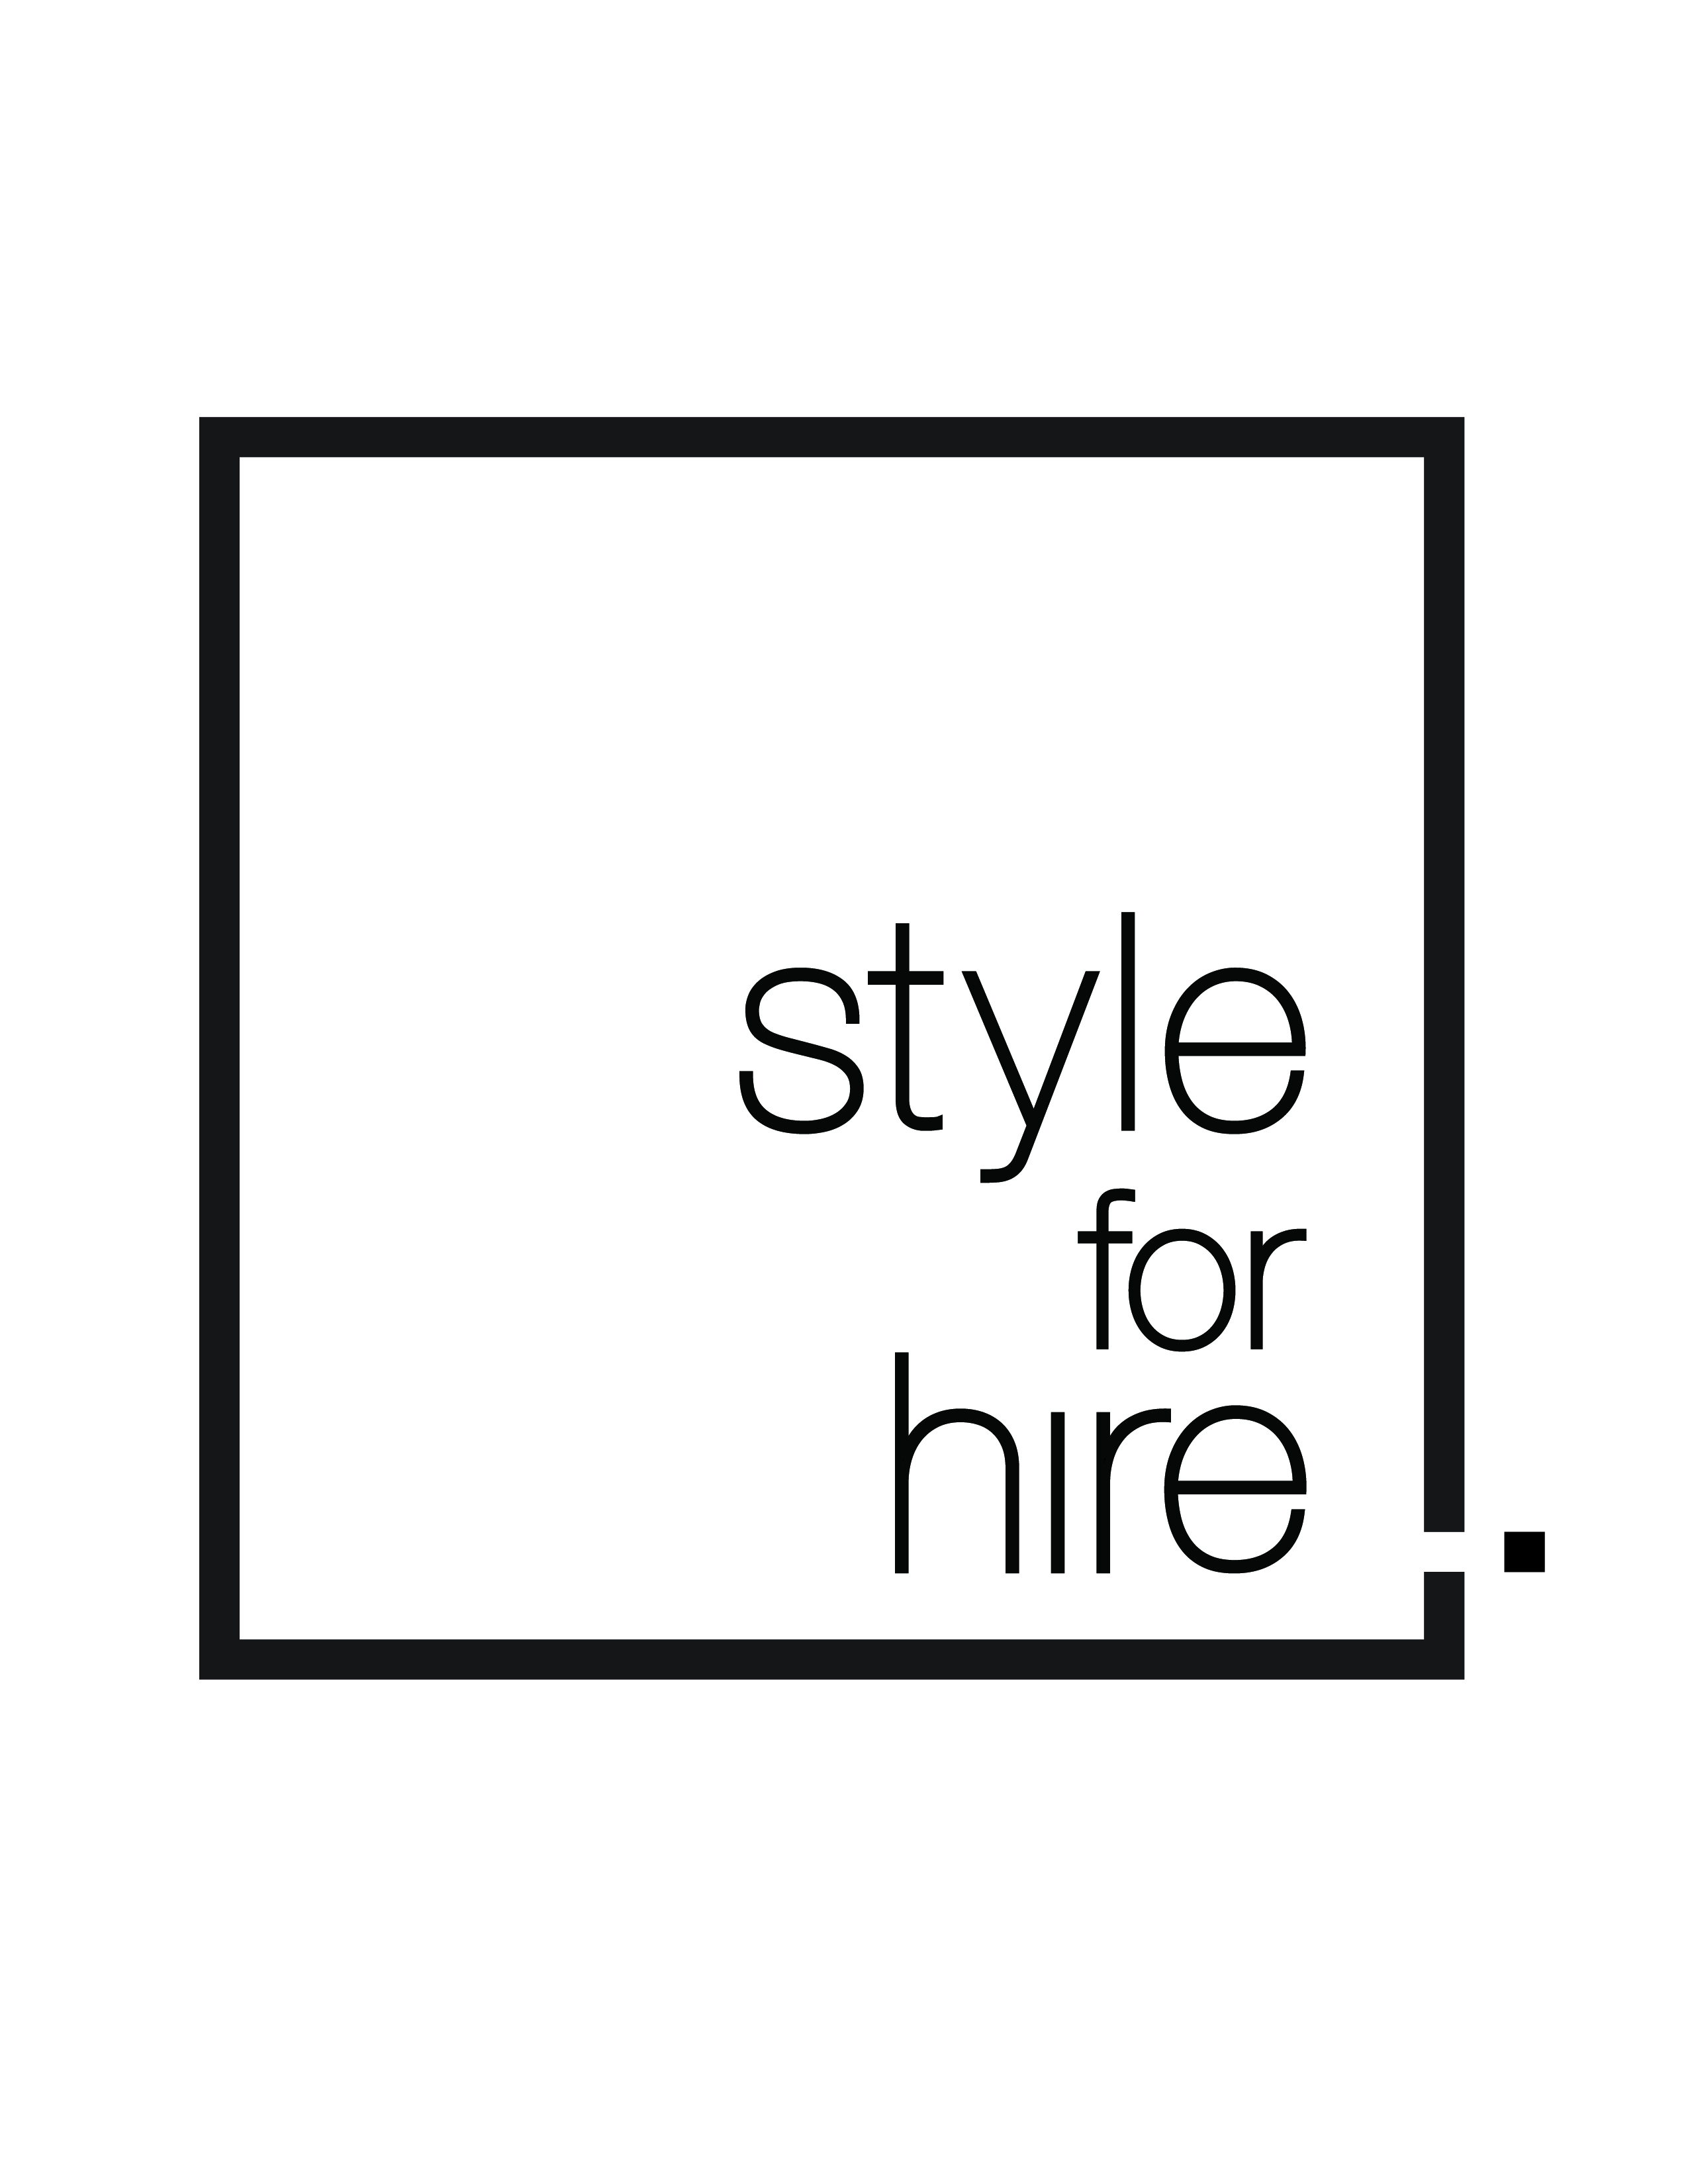 Style for Hire national style experts trained by Stacy London will offer a chance to win a FREE wardrobe consultation. (click image to enlarge and/or save.)